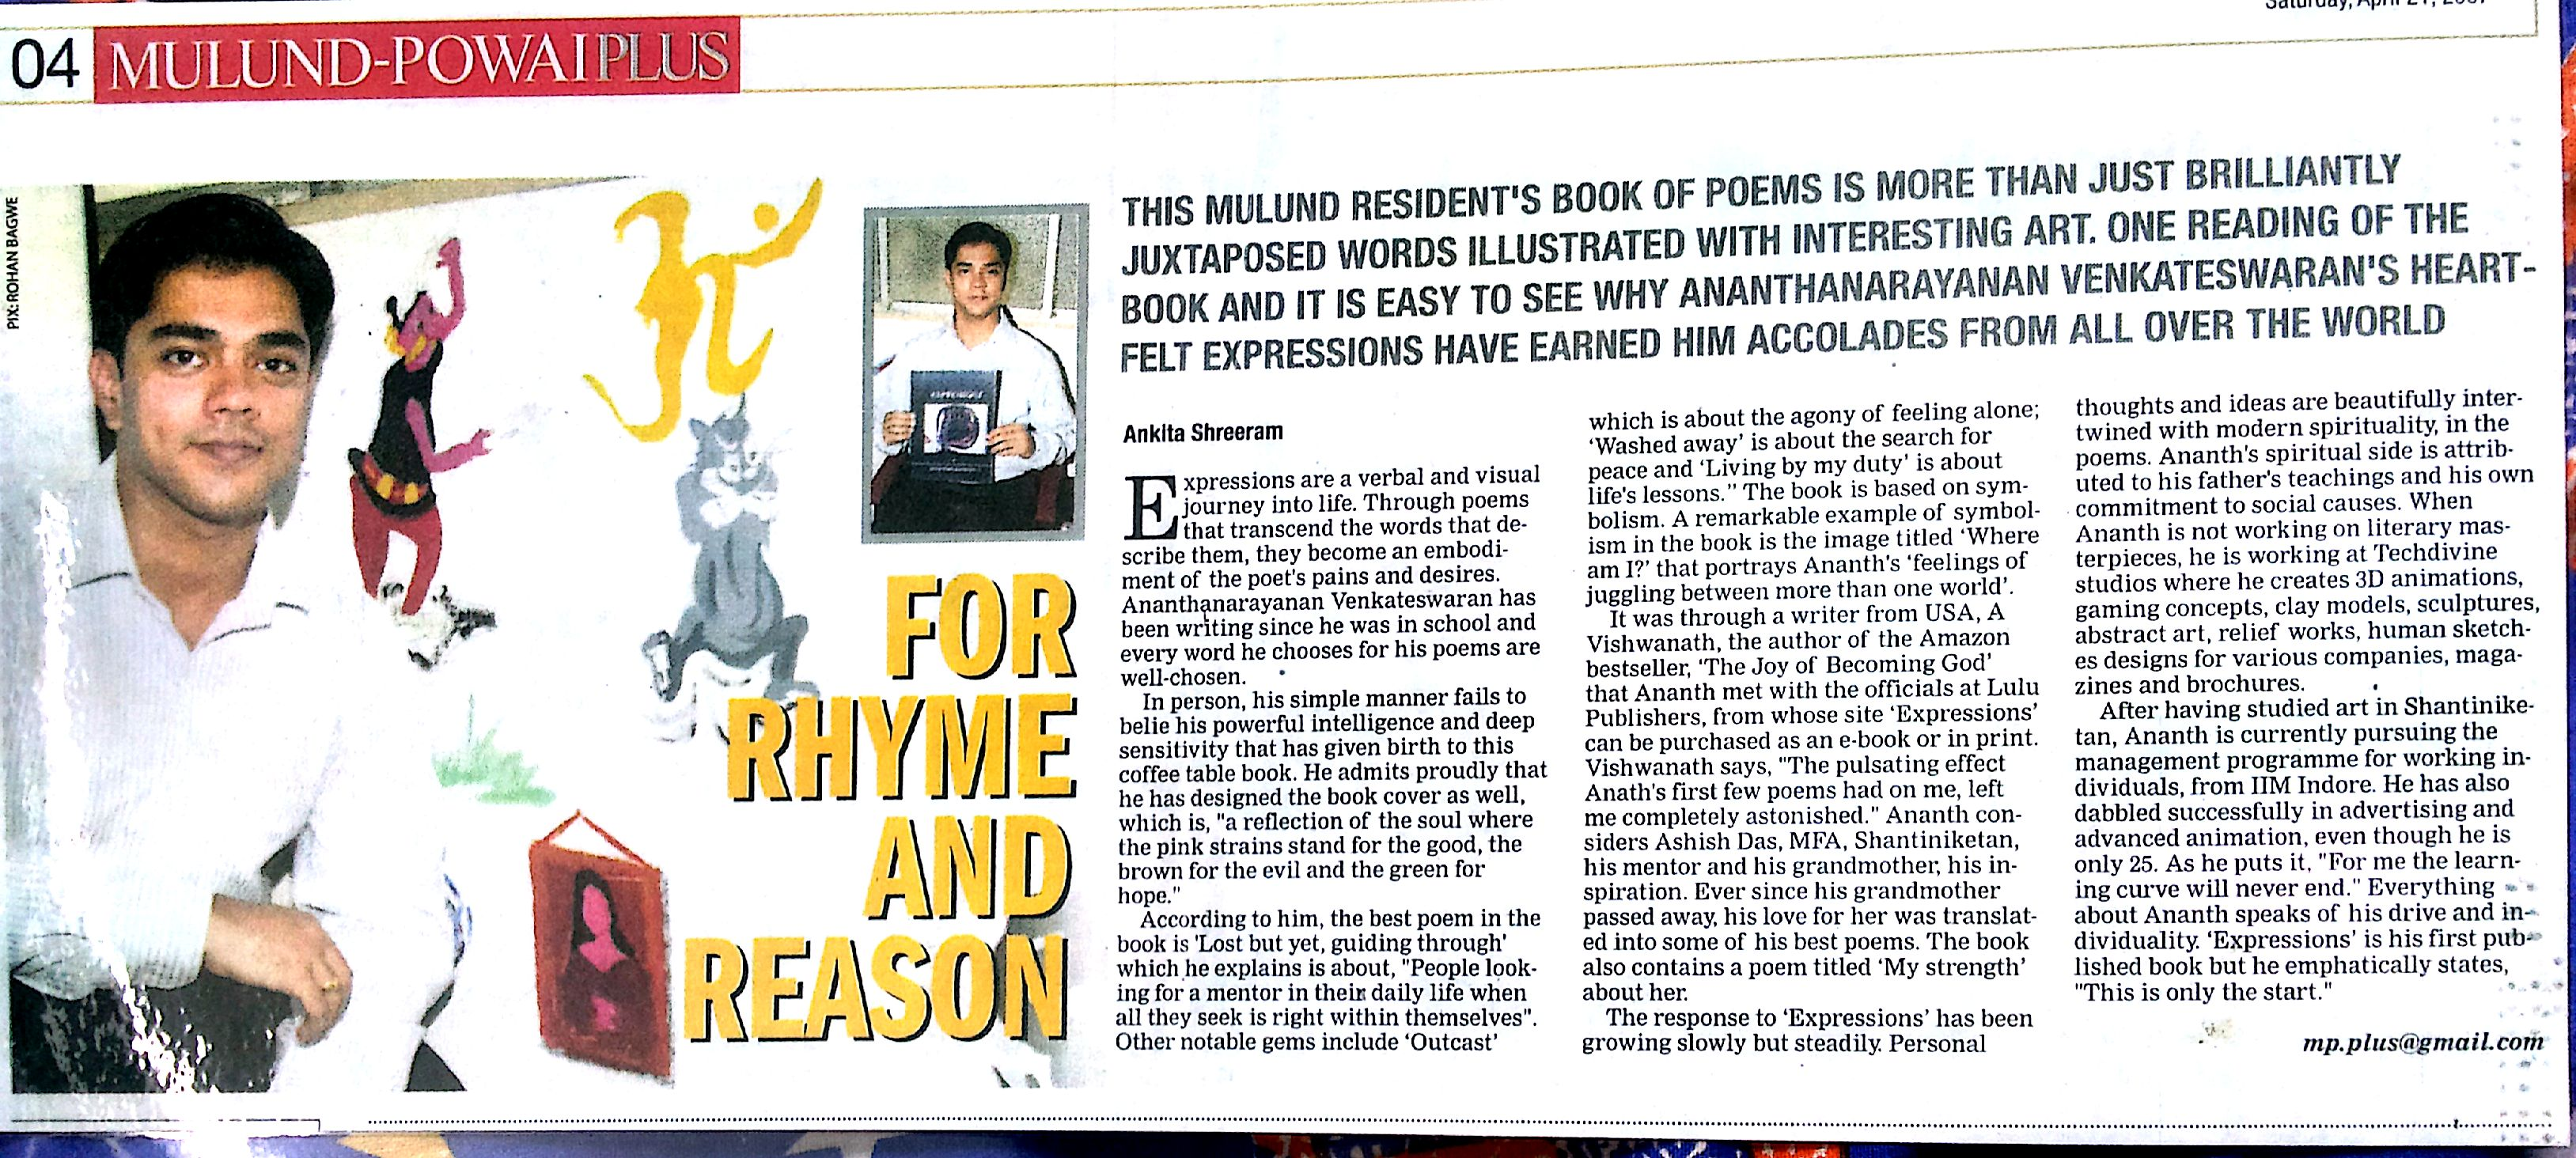 Times Of India Ananth V Expressions Book Coverage Mulund Powai Plus Coffee table Book USA,Europe,INDIA